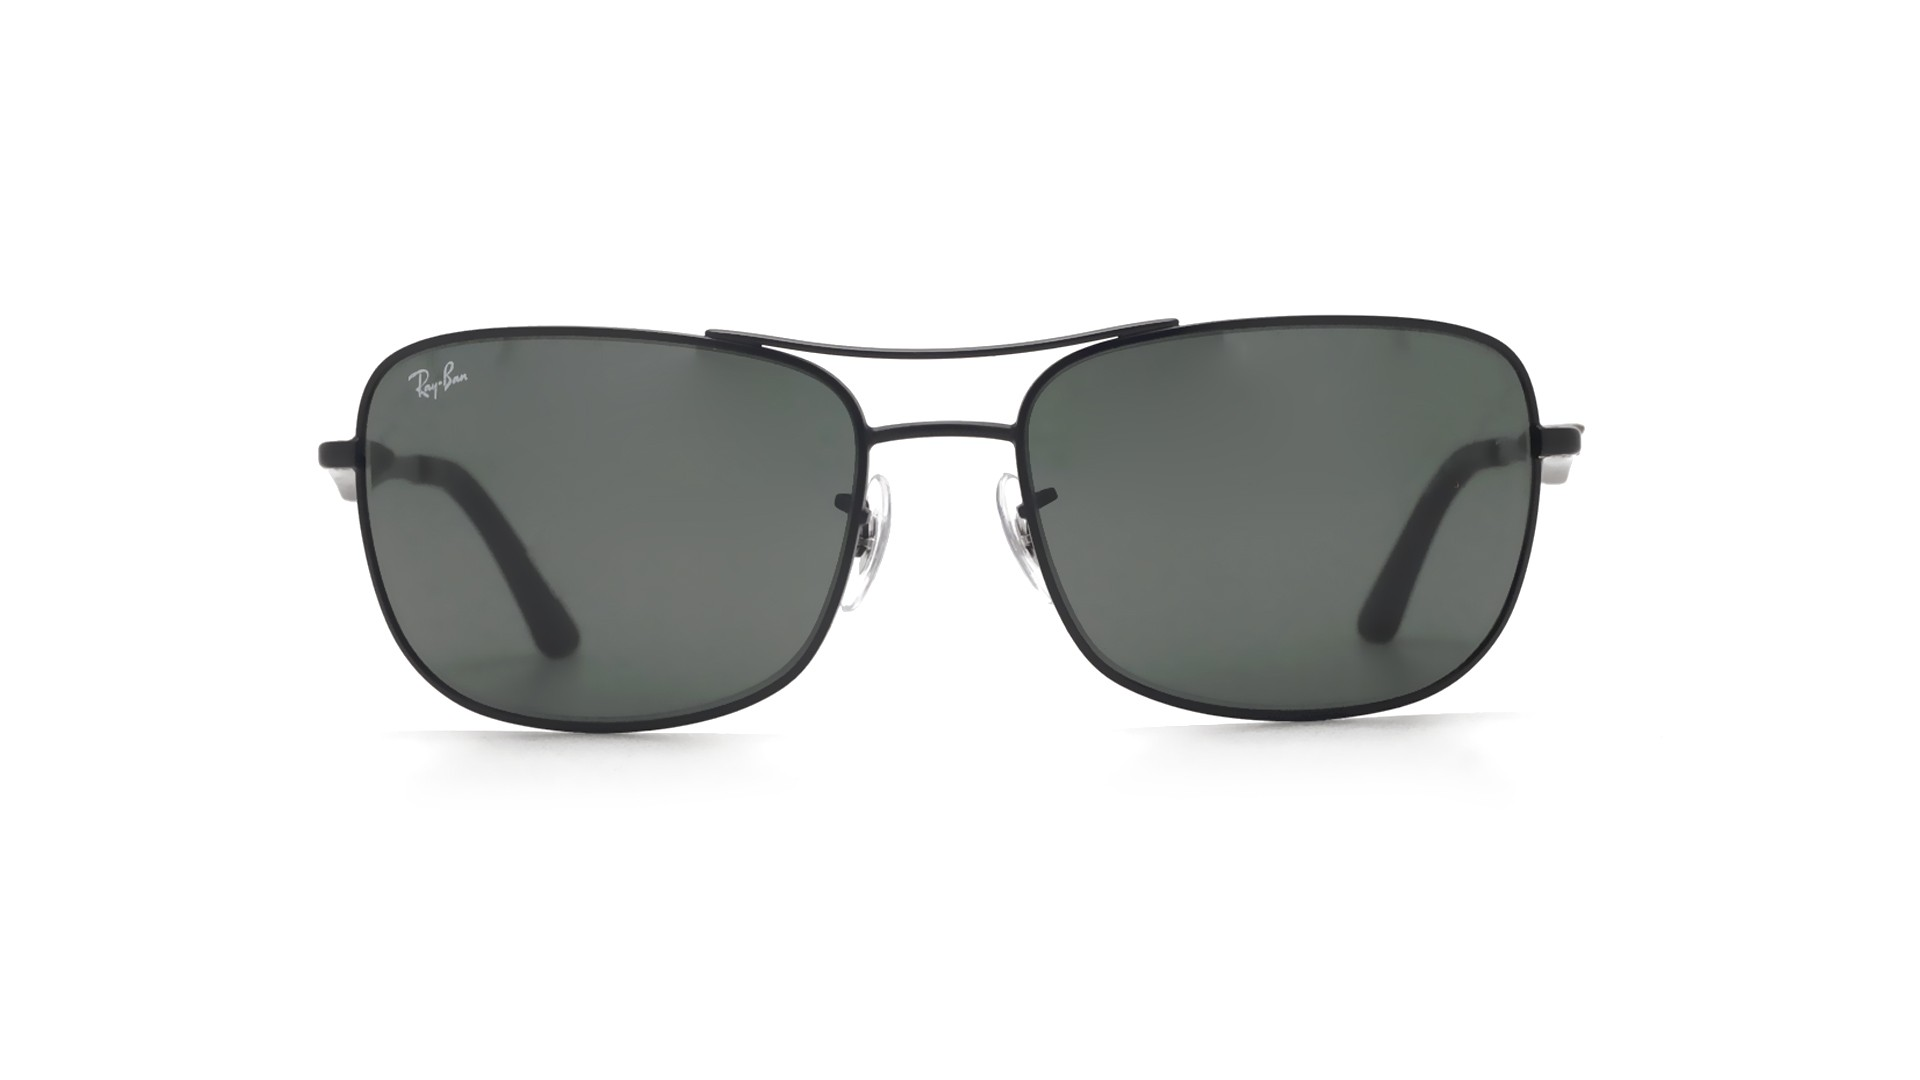 6f6553410d7 Sunglasses Ray-Ban RB3515 006 71 61-17 Black Matte Large